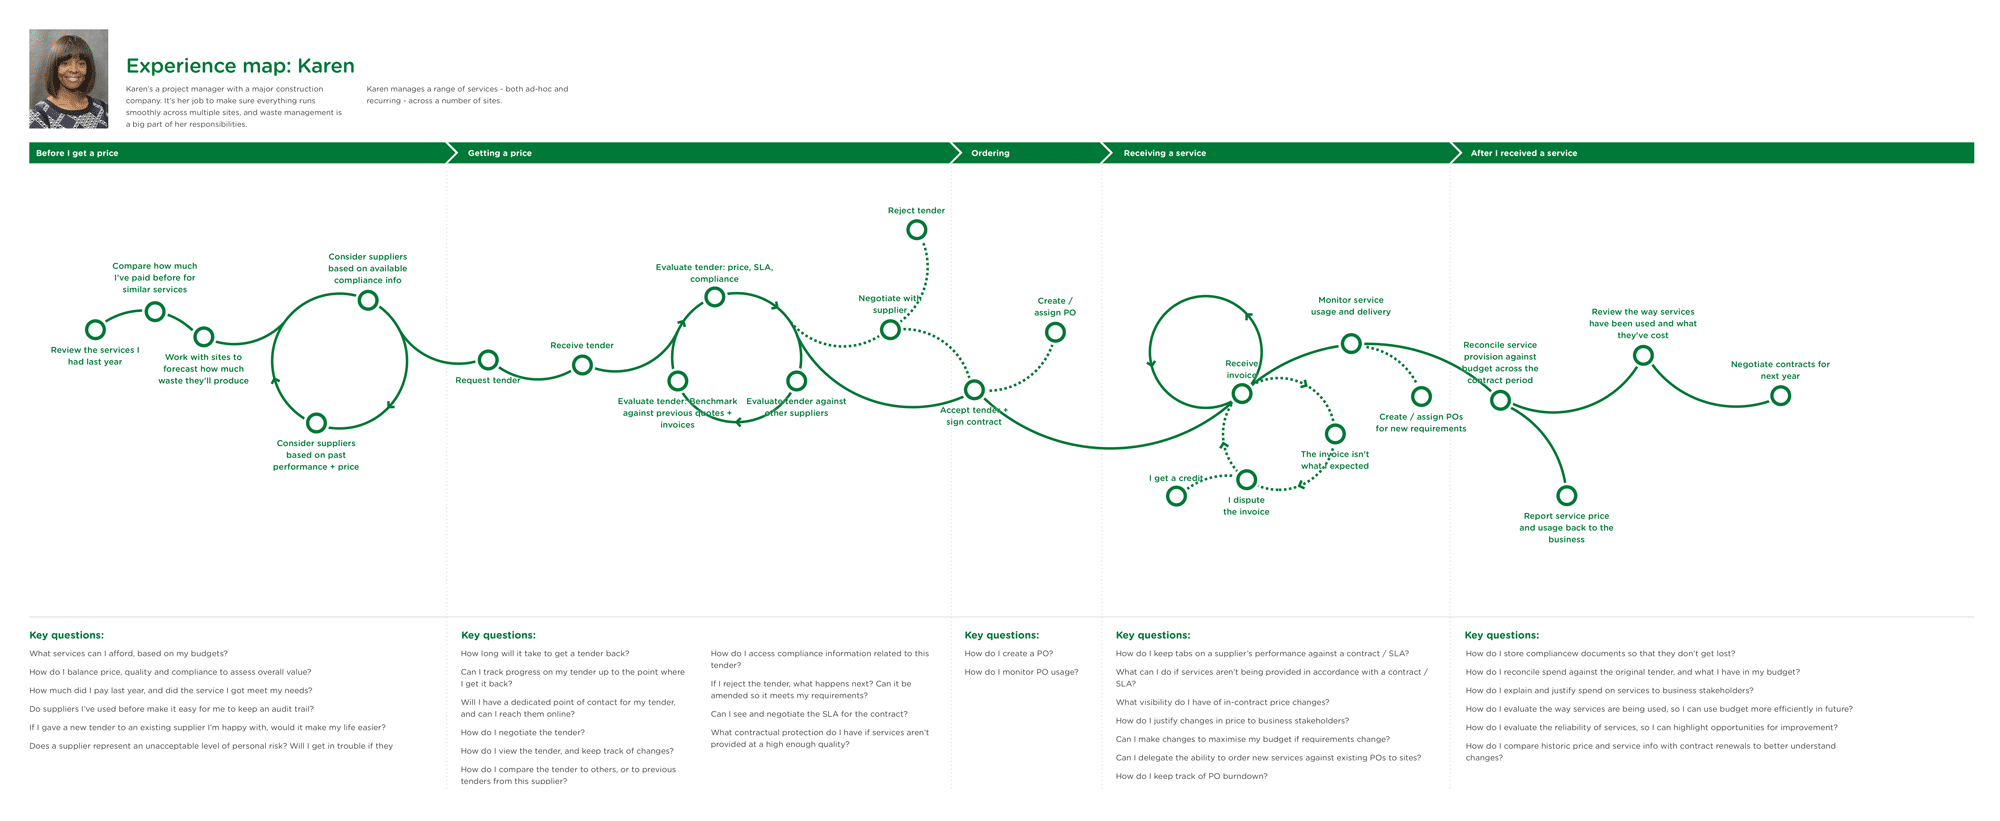 An experience map, with customer journey points connected by lines and key questions for each journey point listed underneath